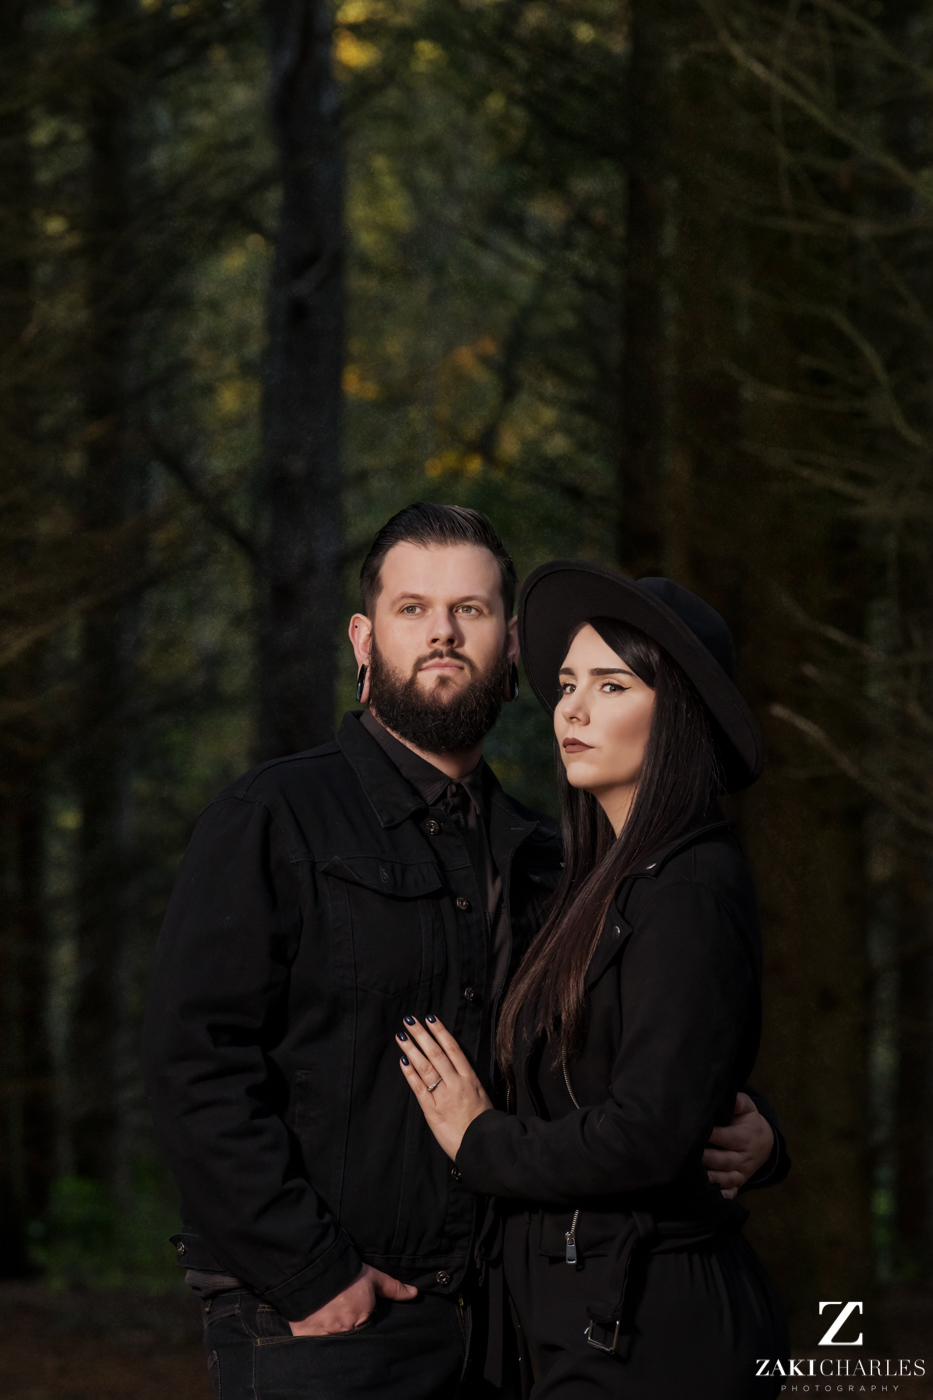 Black Park Engagement Session, Kirsty & Alex Zaki Charles Photography 2